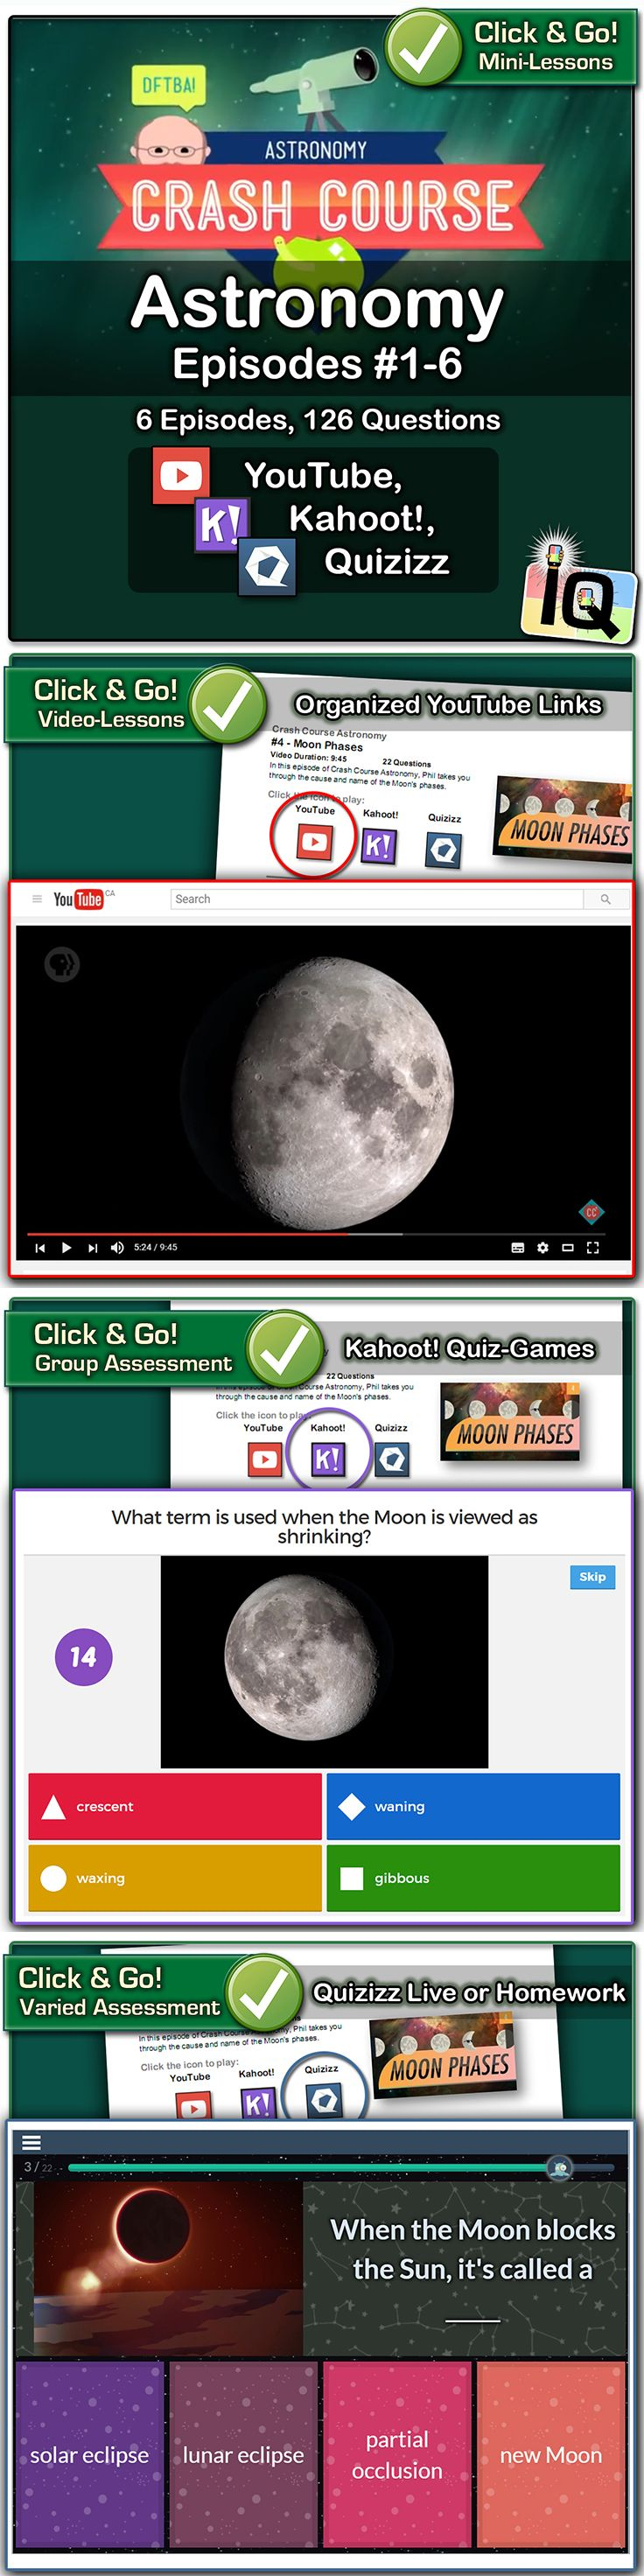 Just point and click to teach about moon phases, eclipses, and telescopes!